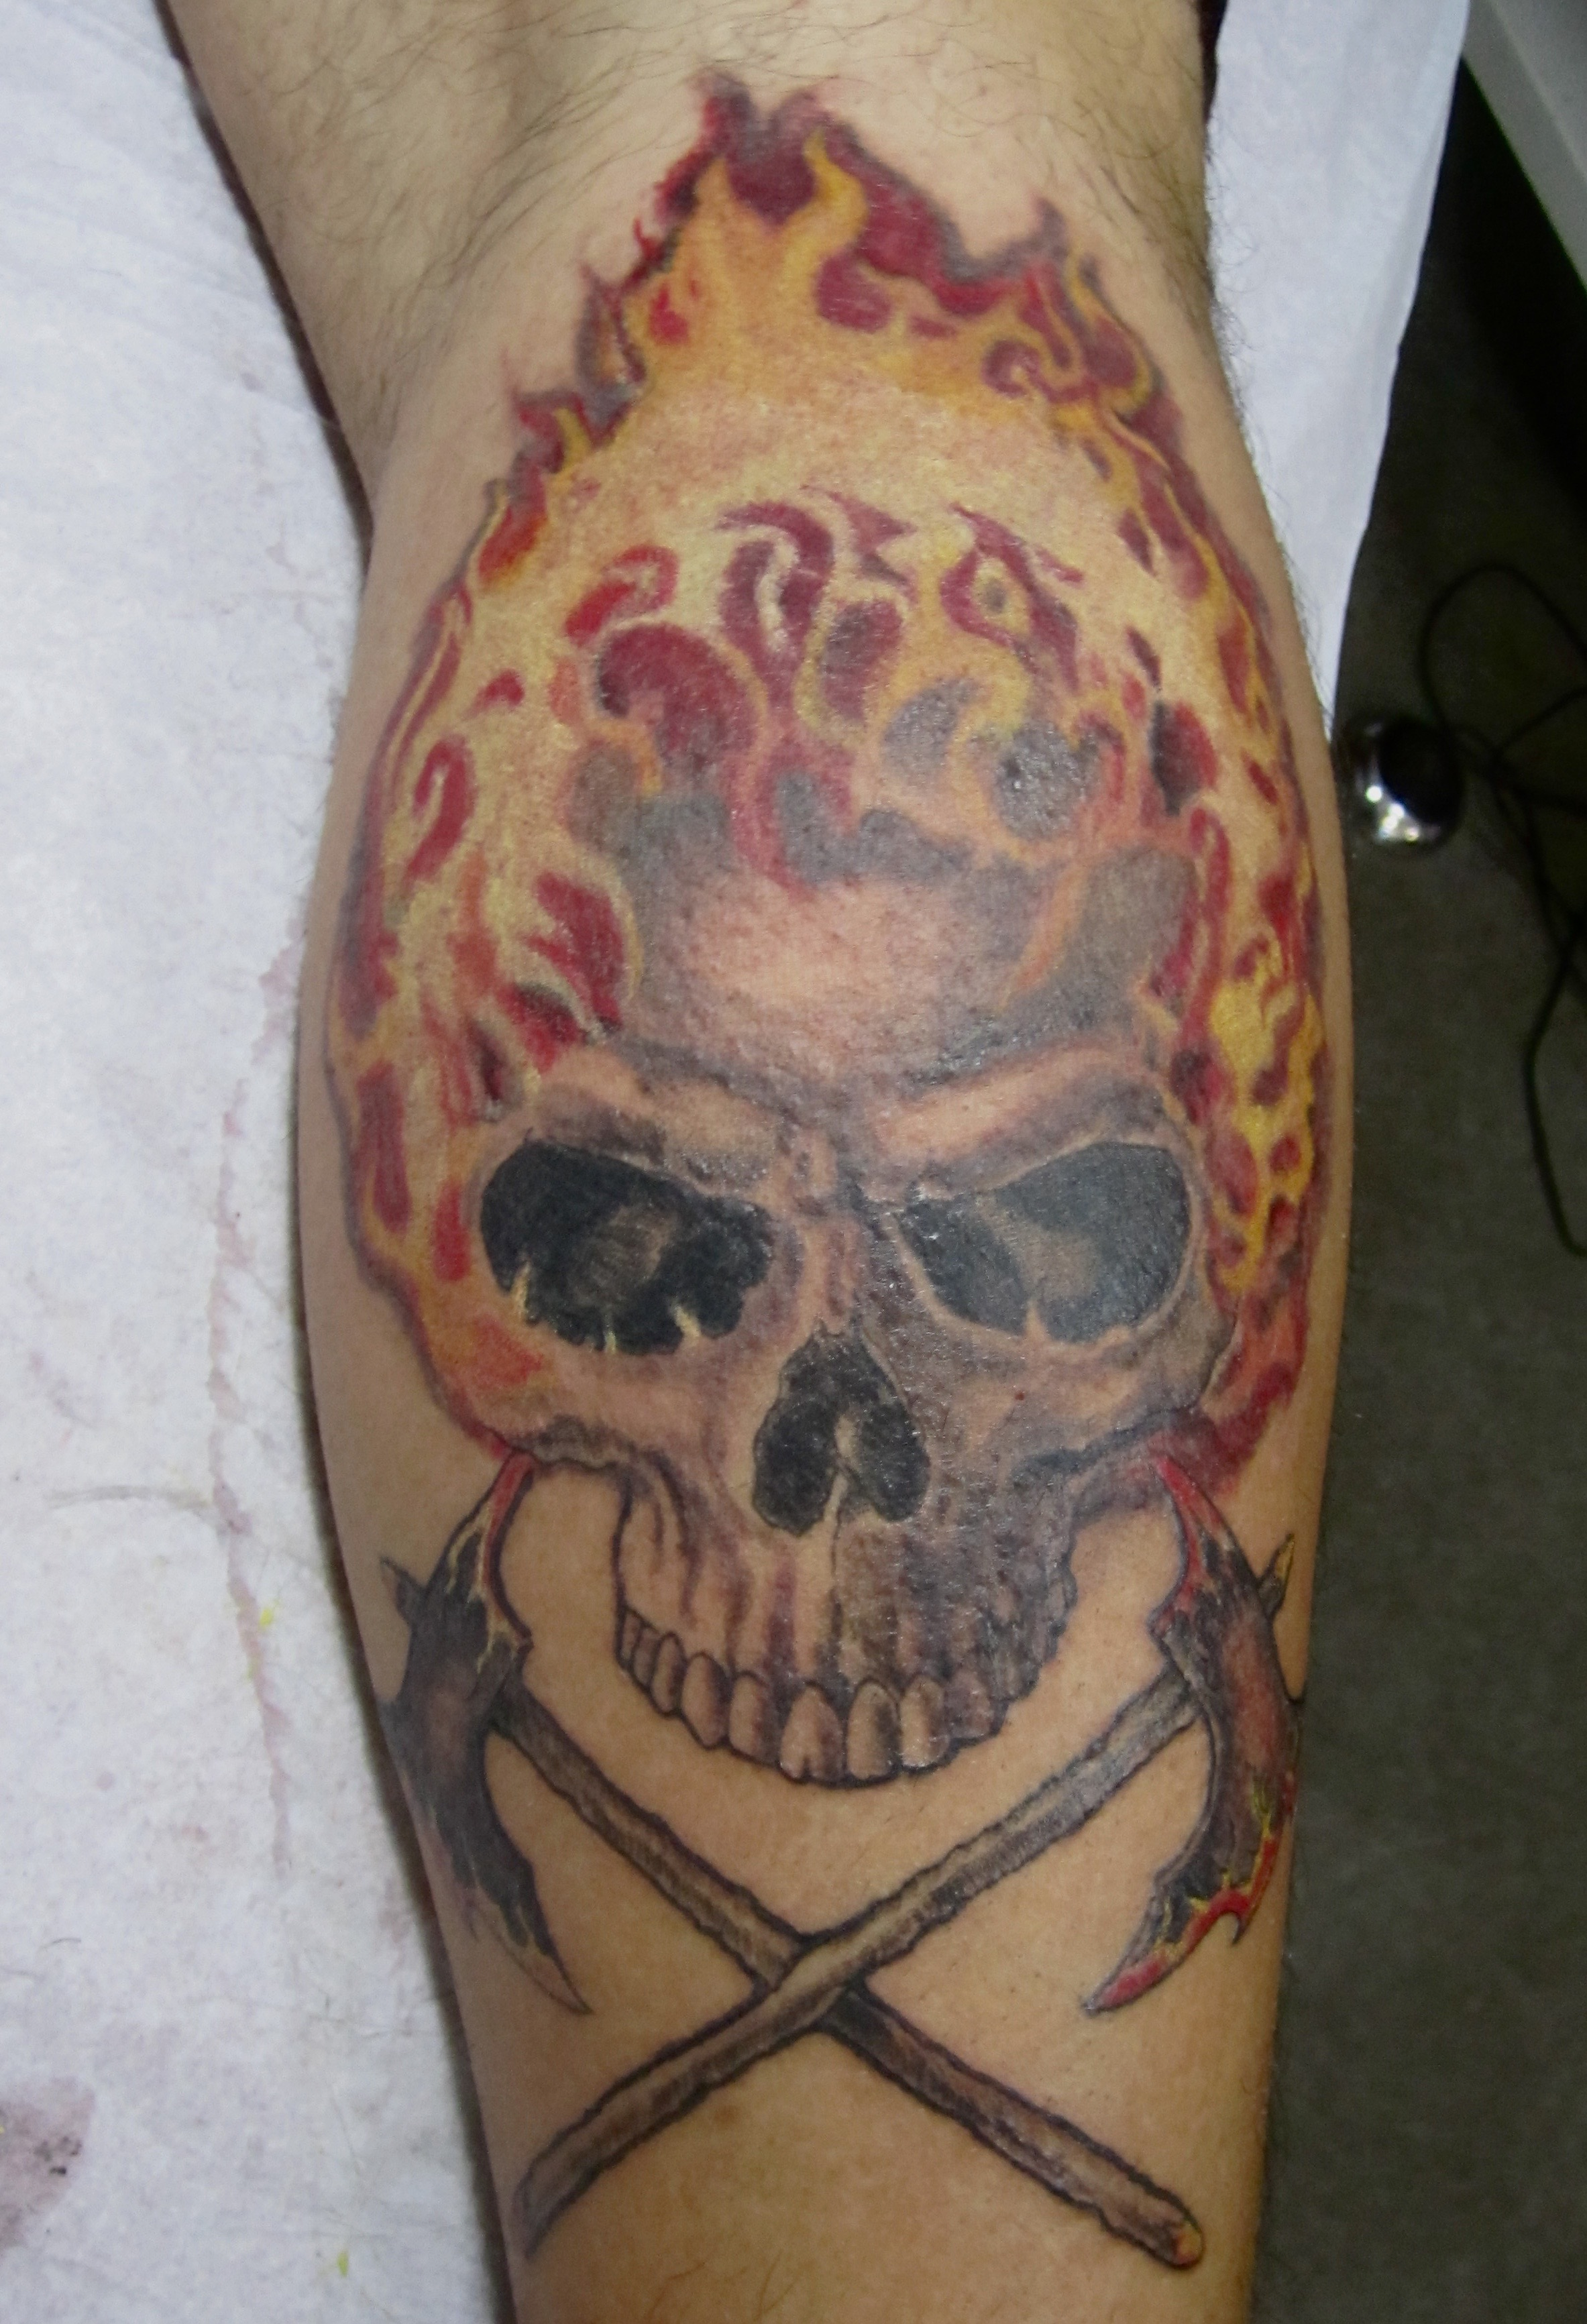 Fire Skull tattoo, Karina Mayorga